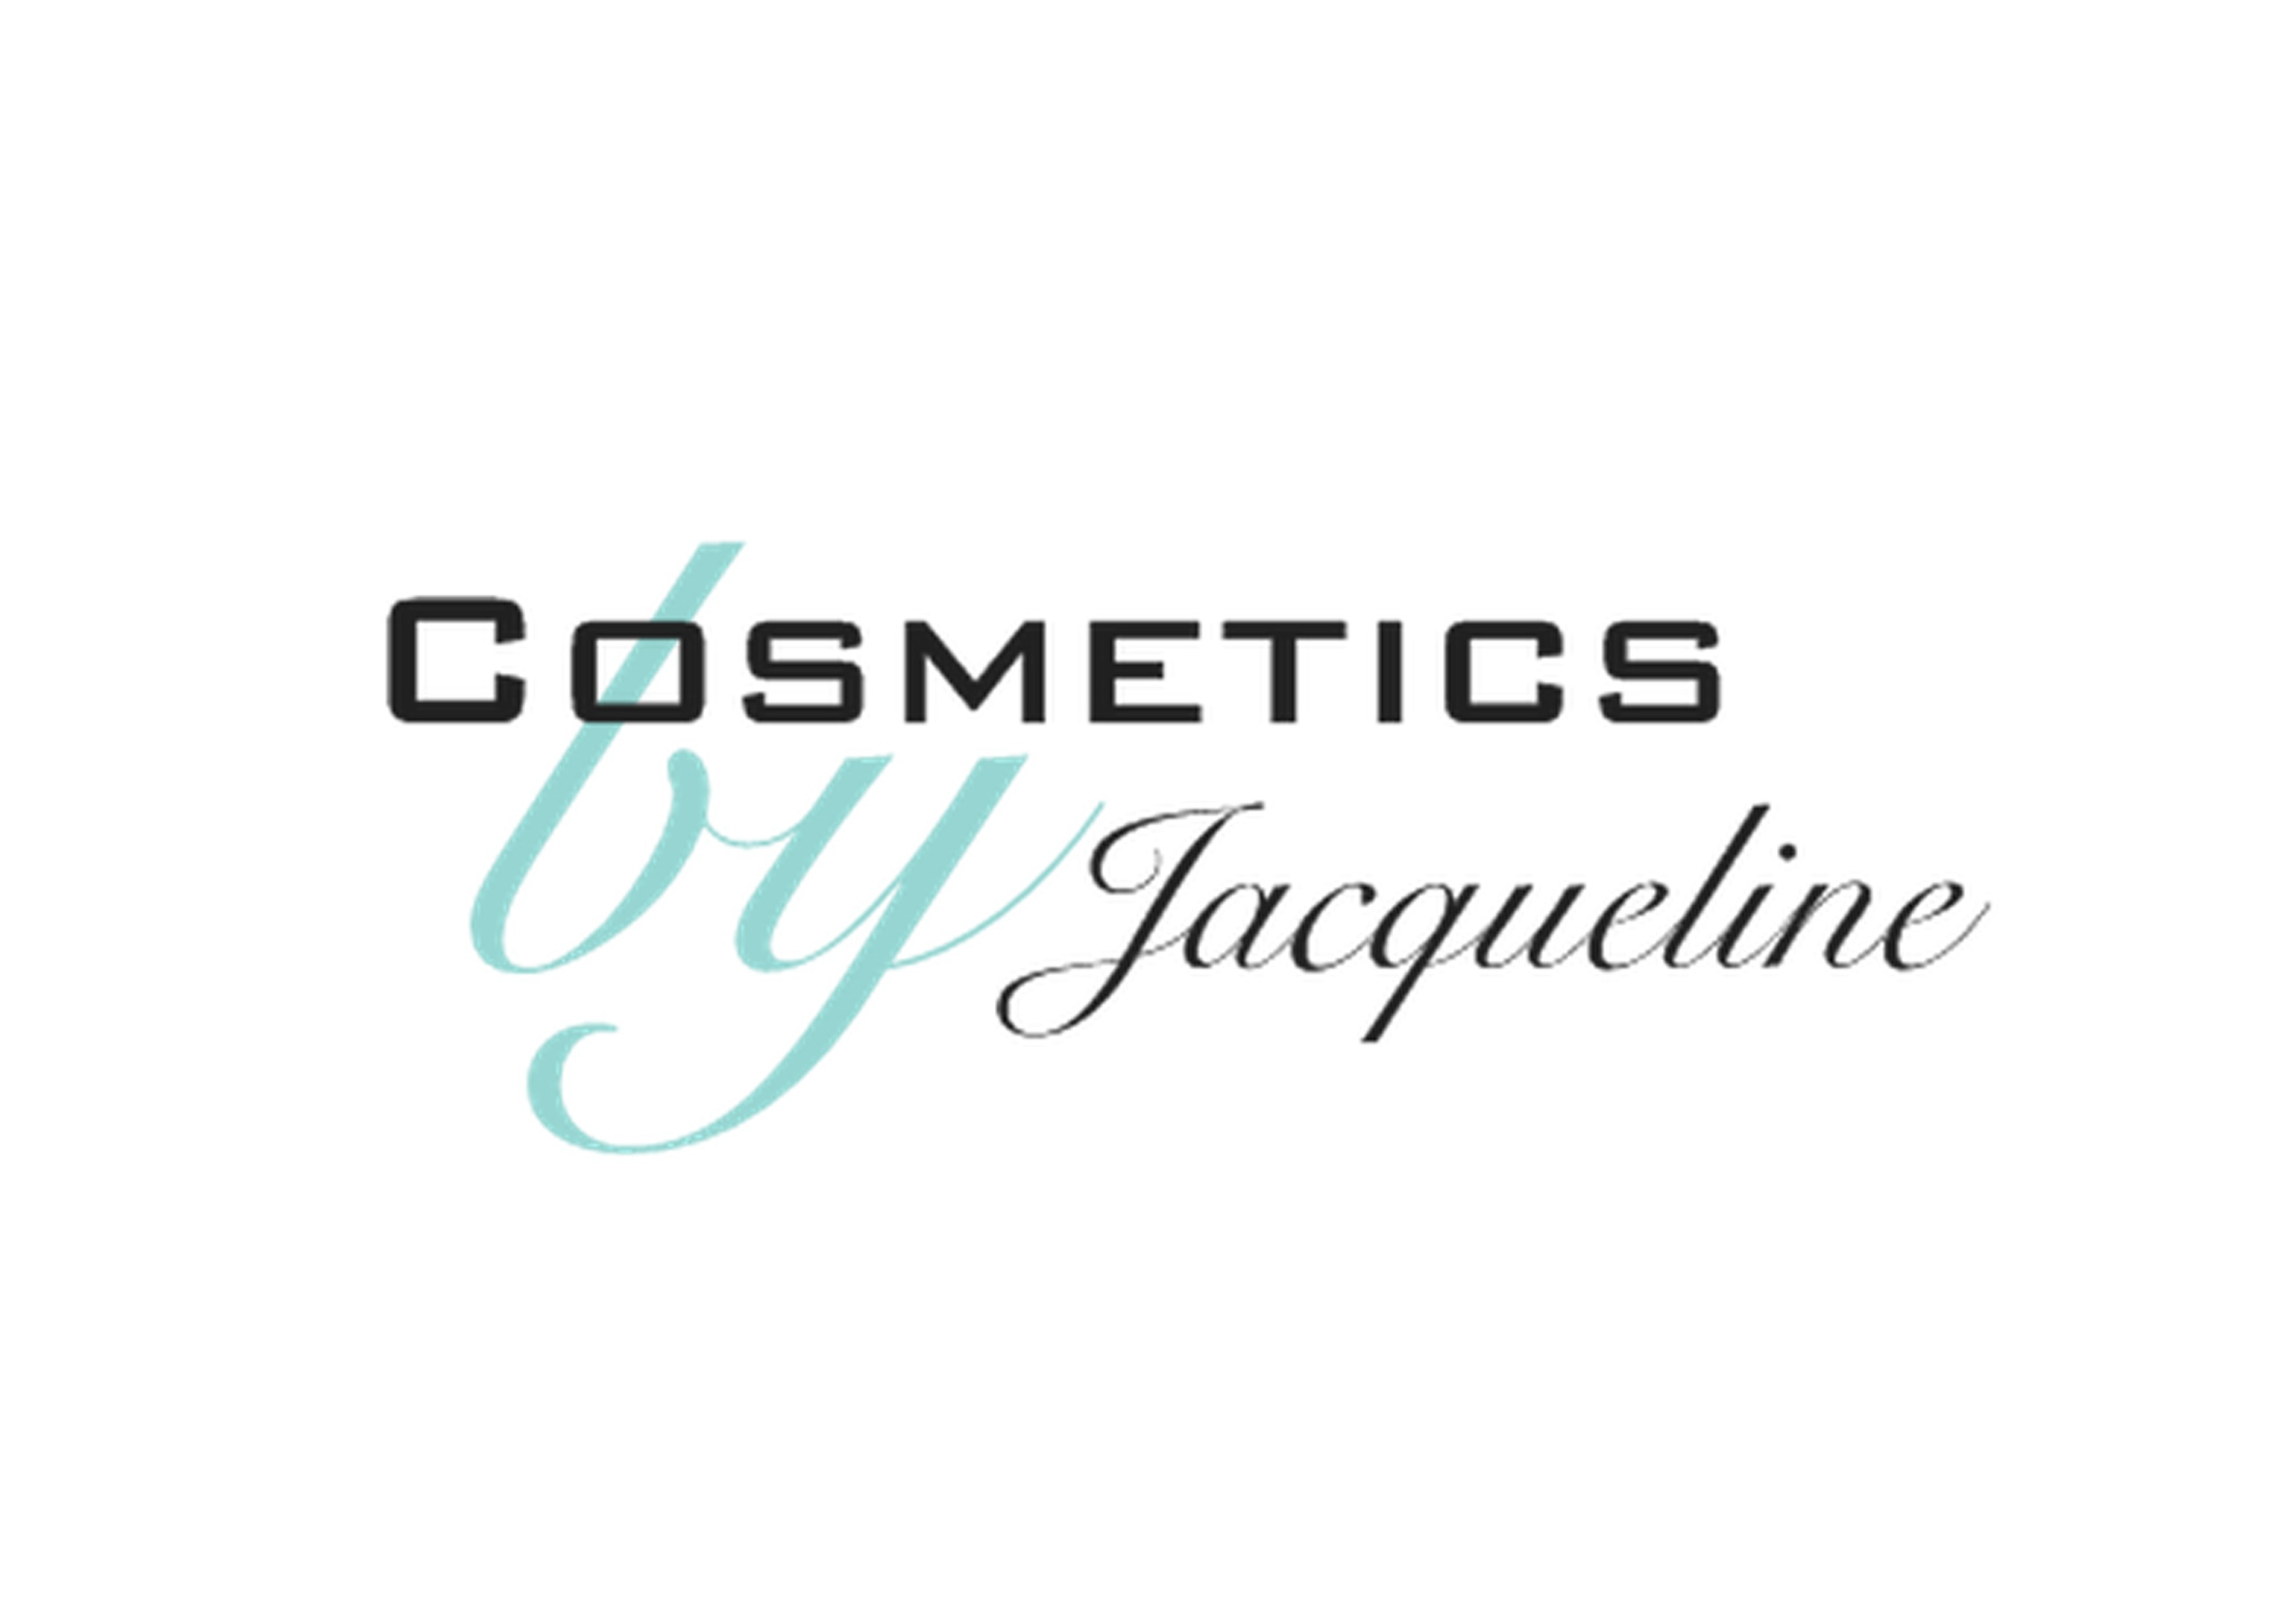 Cosmetics_by_Jacqueline_logo_groot